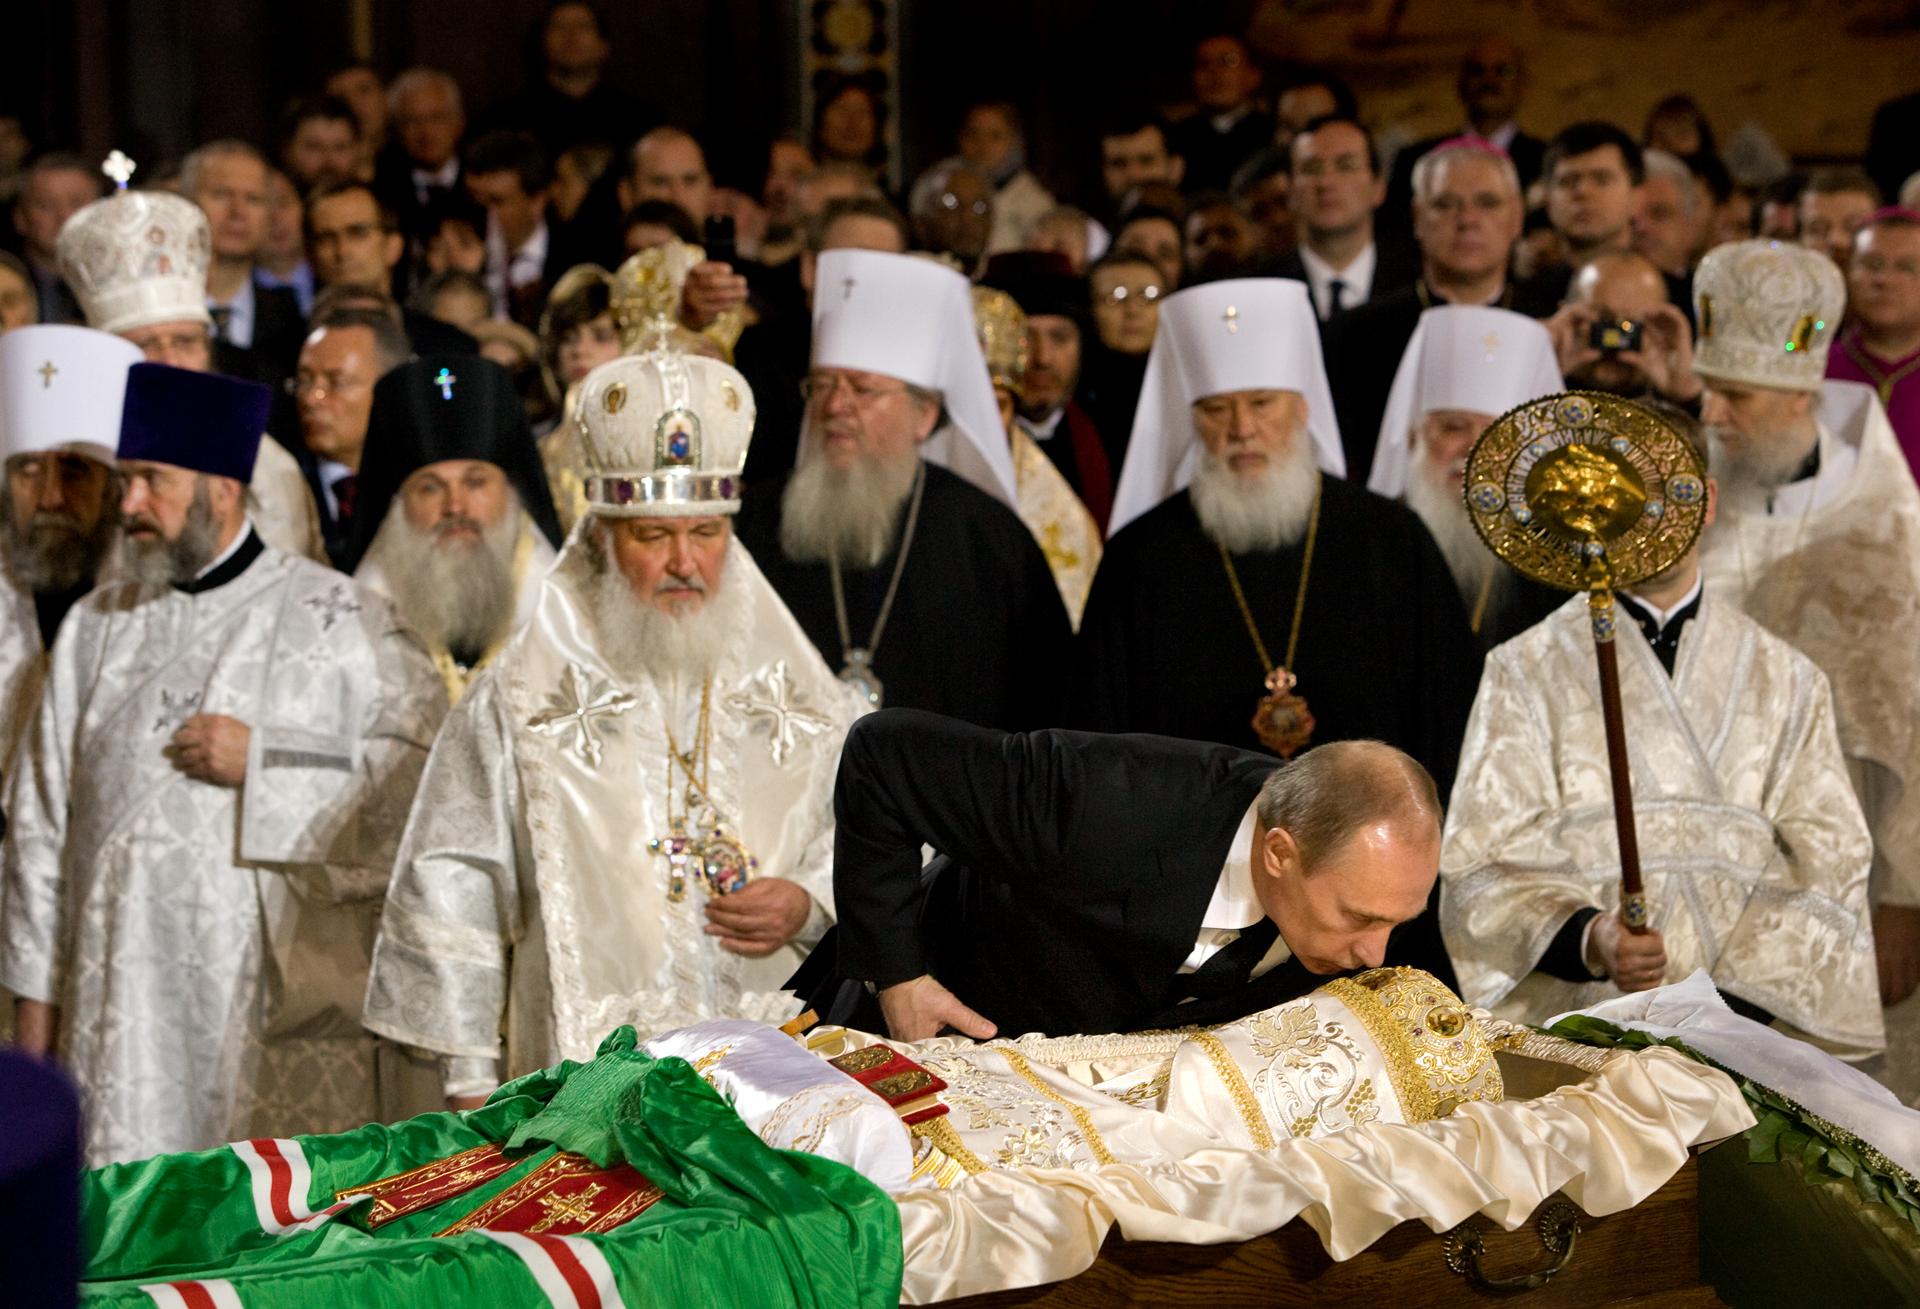 At the funeral of Alexy II, Prime Minister Putin kisses the body of the late patriarch while the successor, Metropolitan Kirill stands close.  Moscow, Russia